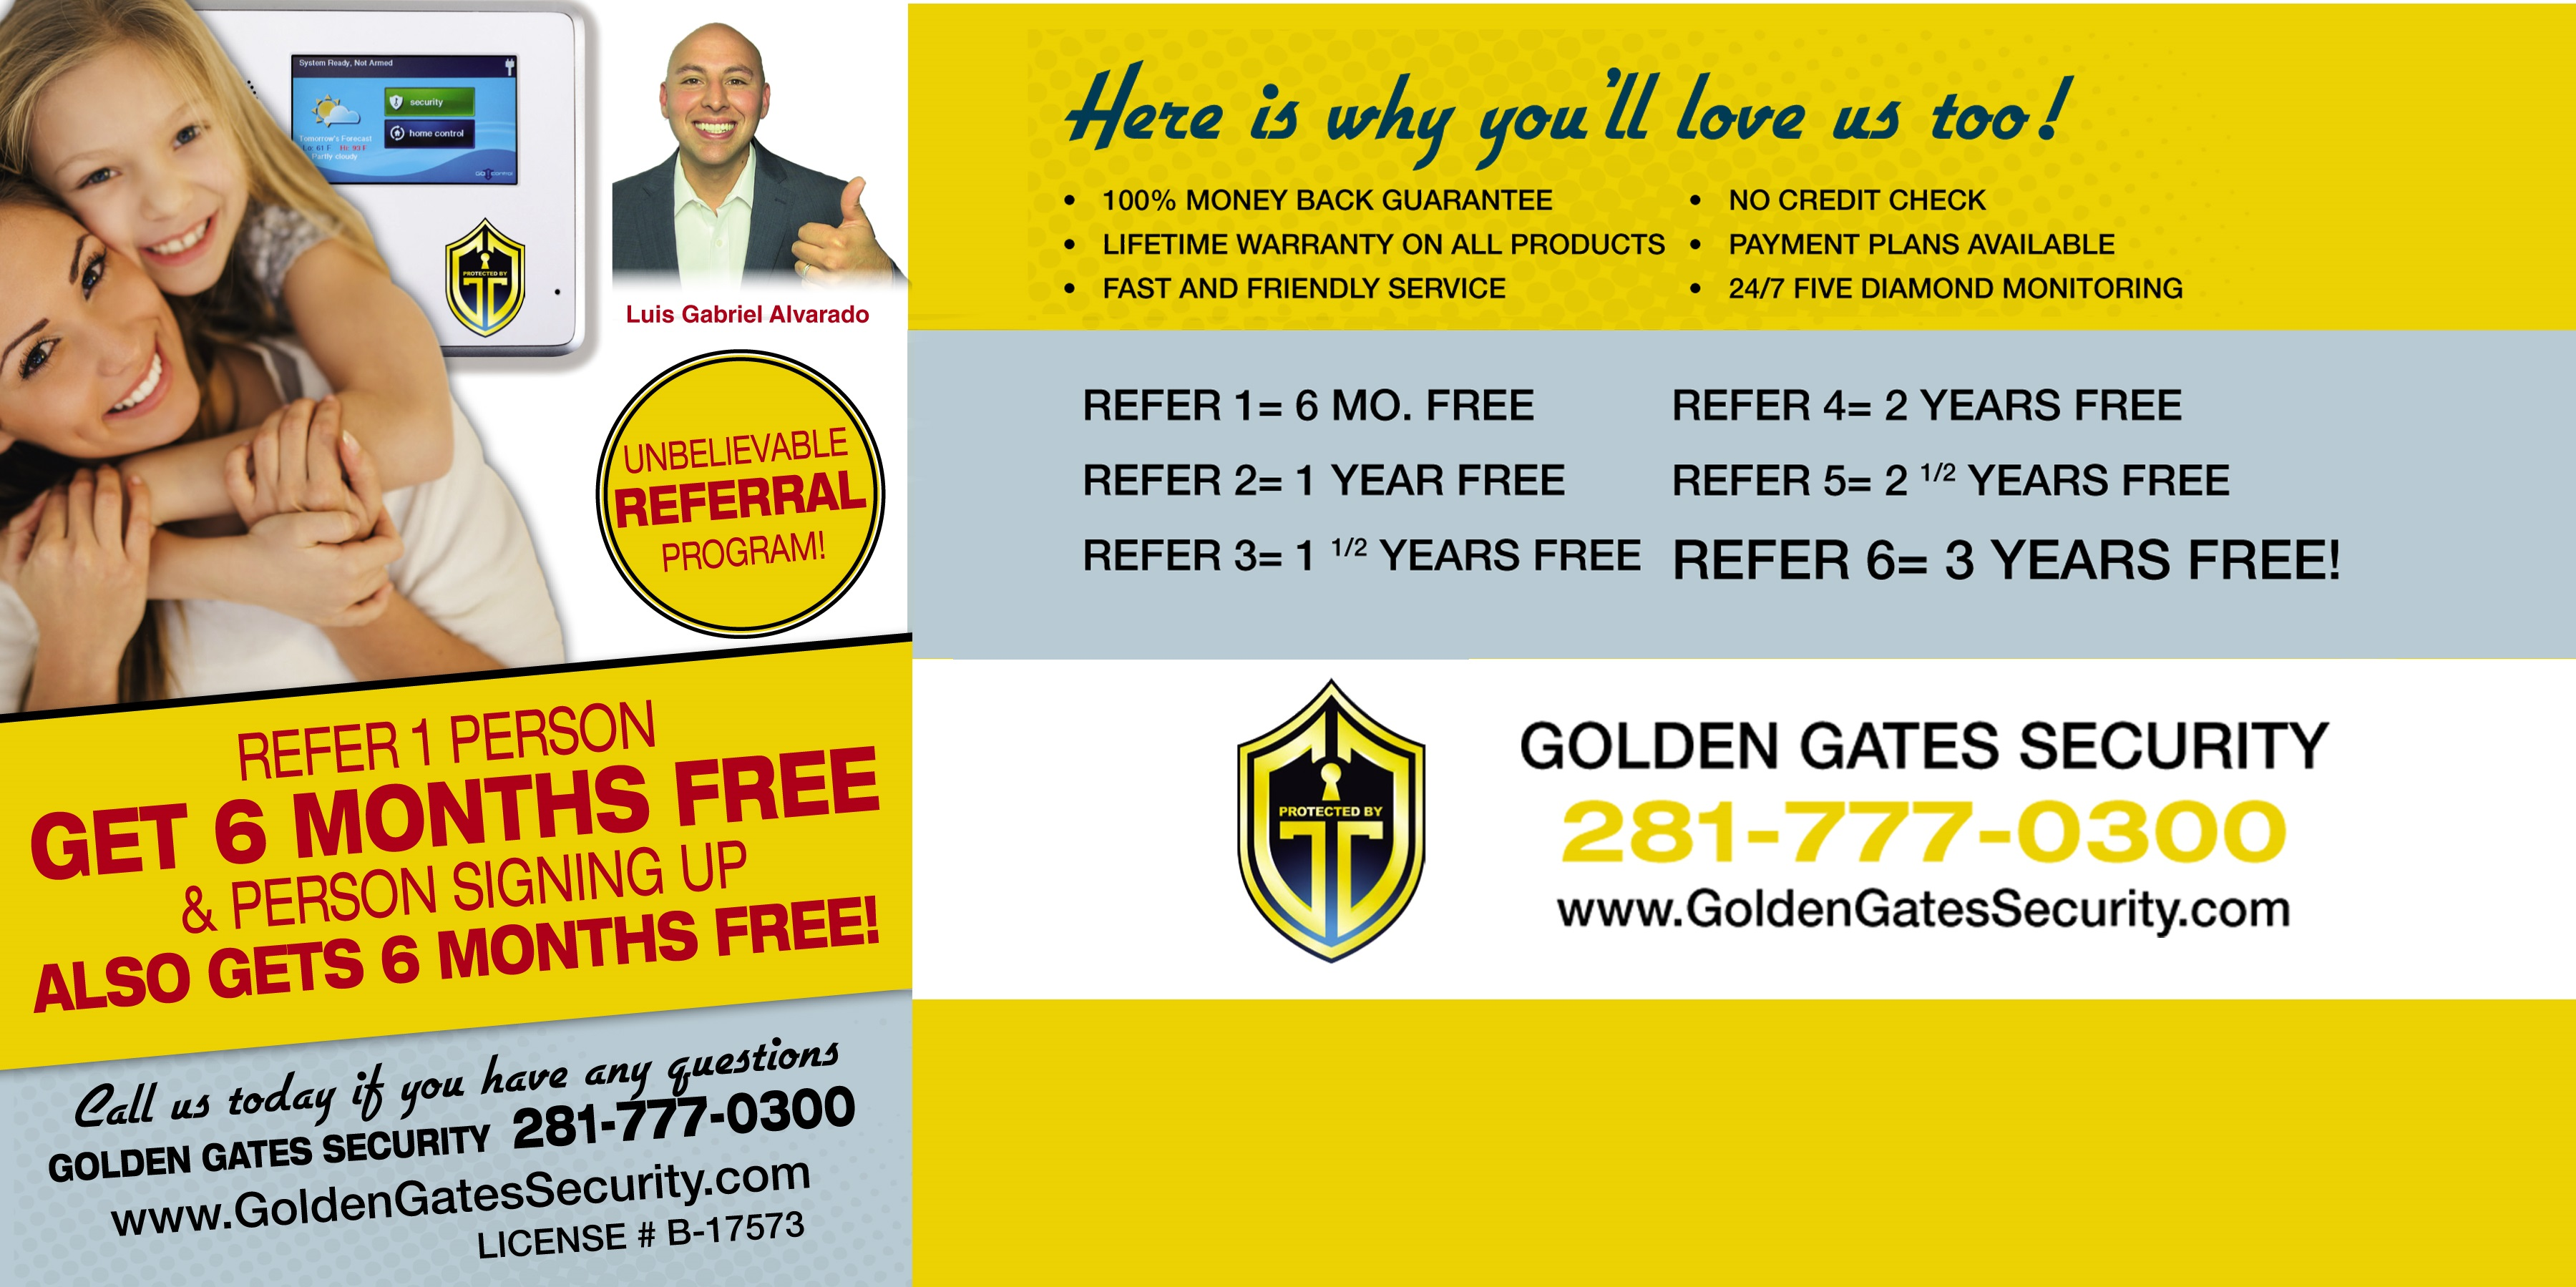 Refer 1 Person, Get 6 Months Free!! NO LIMIT!!